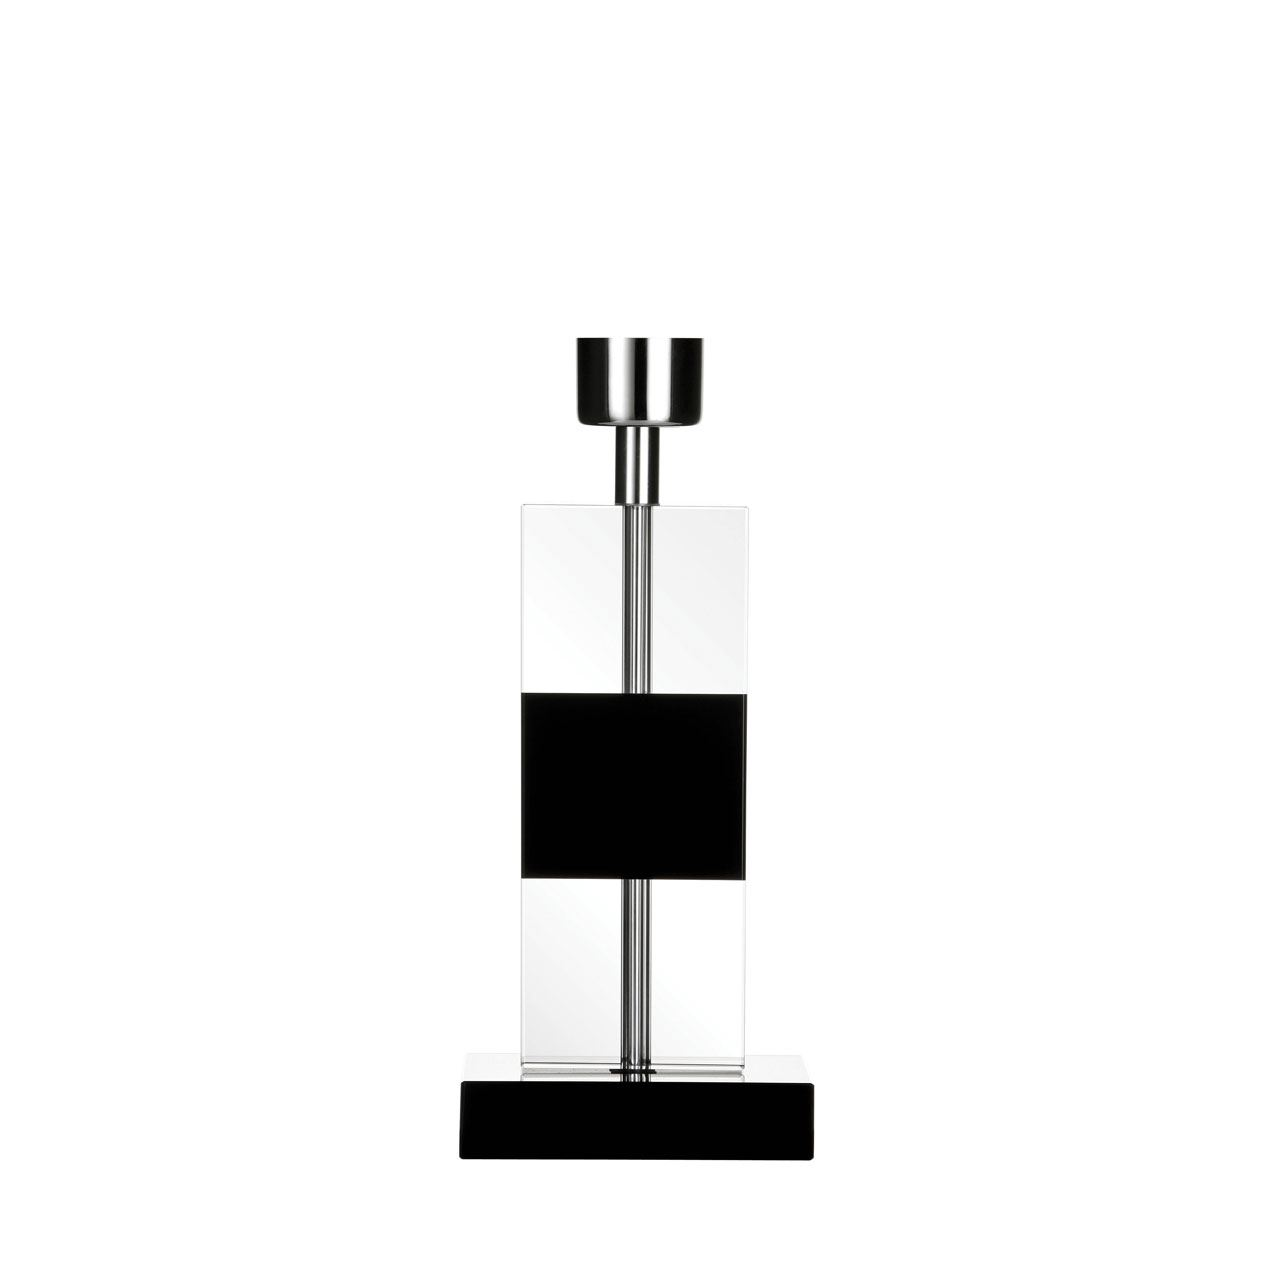 Lamp Base,Black Crystal,Only Suitable For Use With Premier Shades 2501293 - 2501304